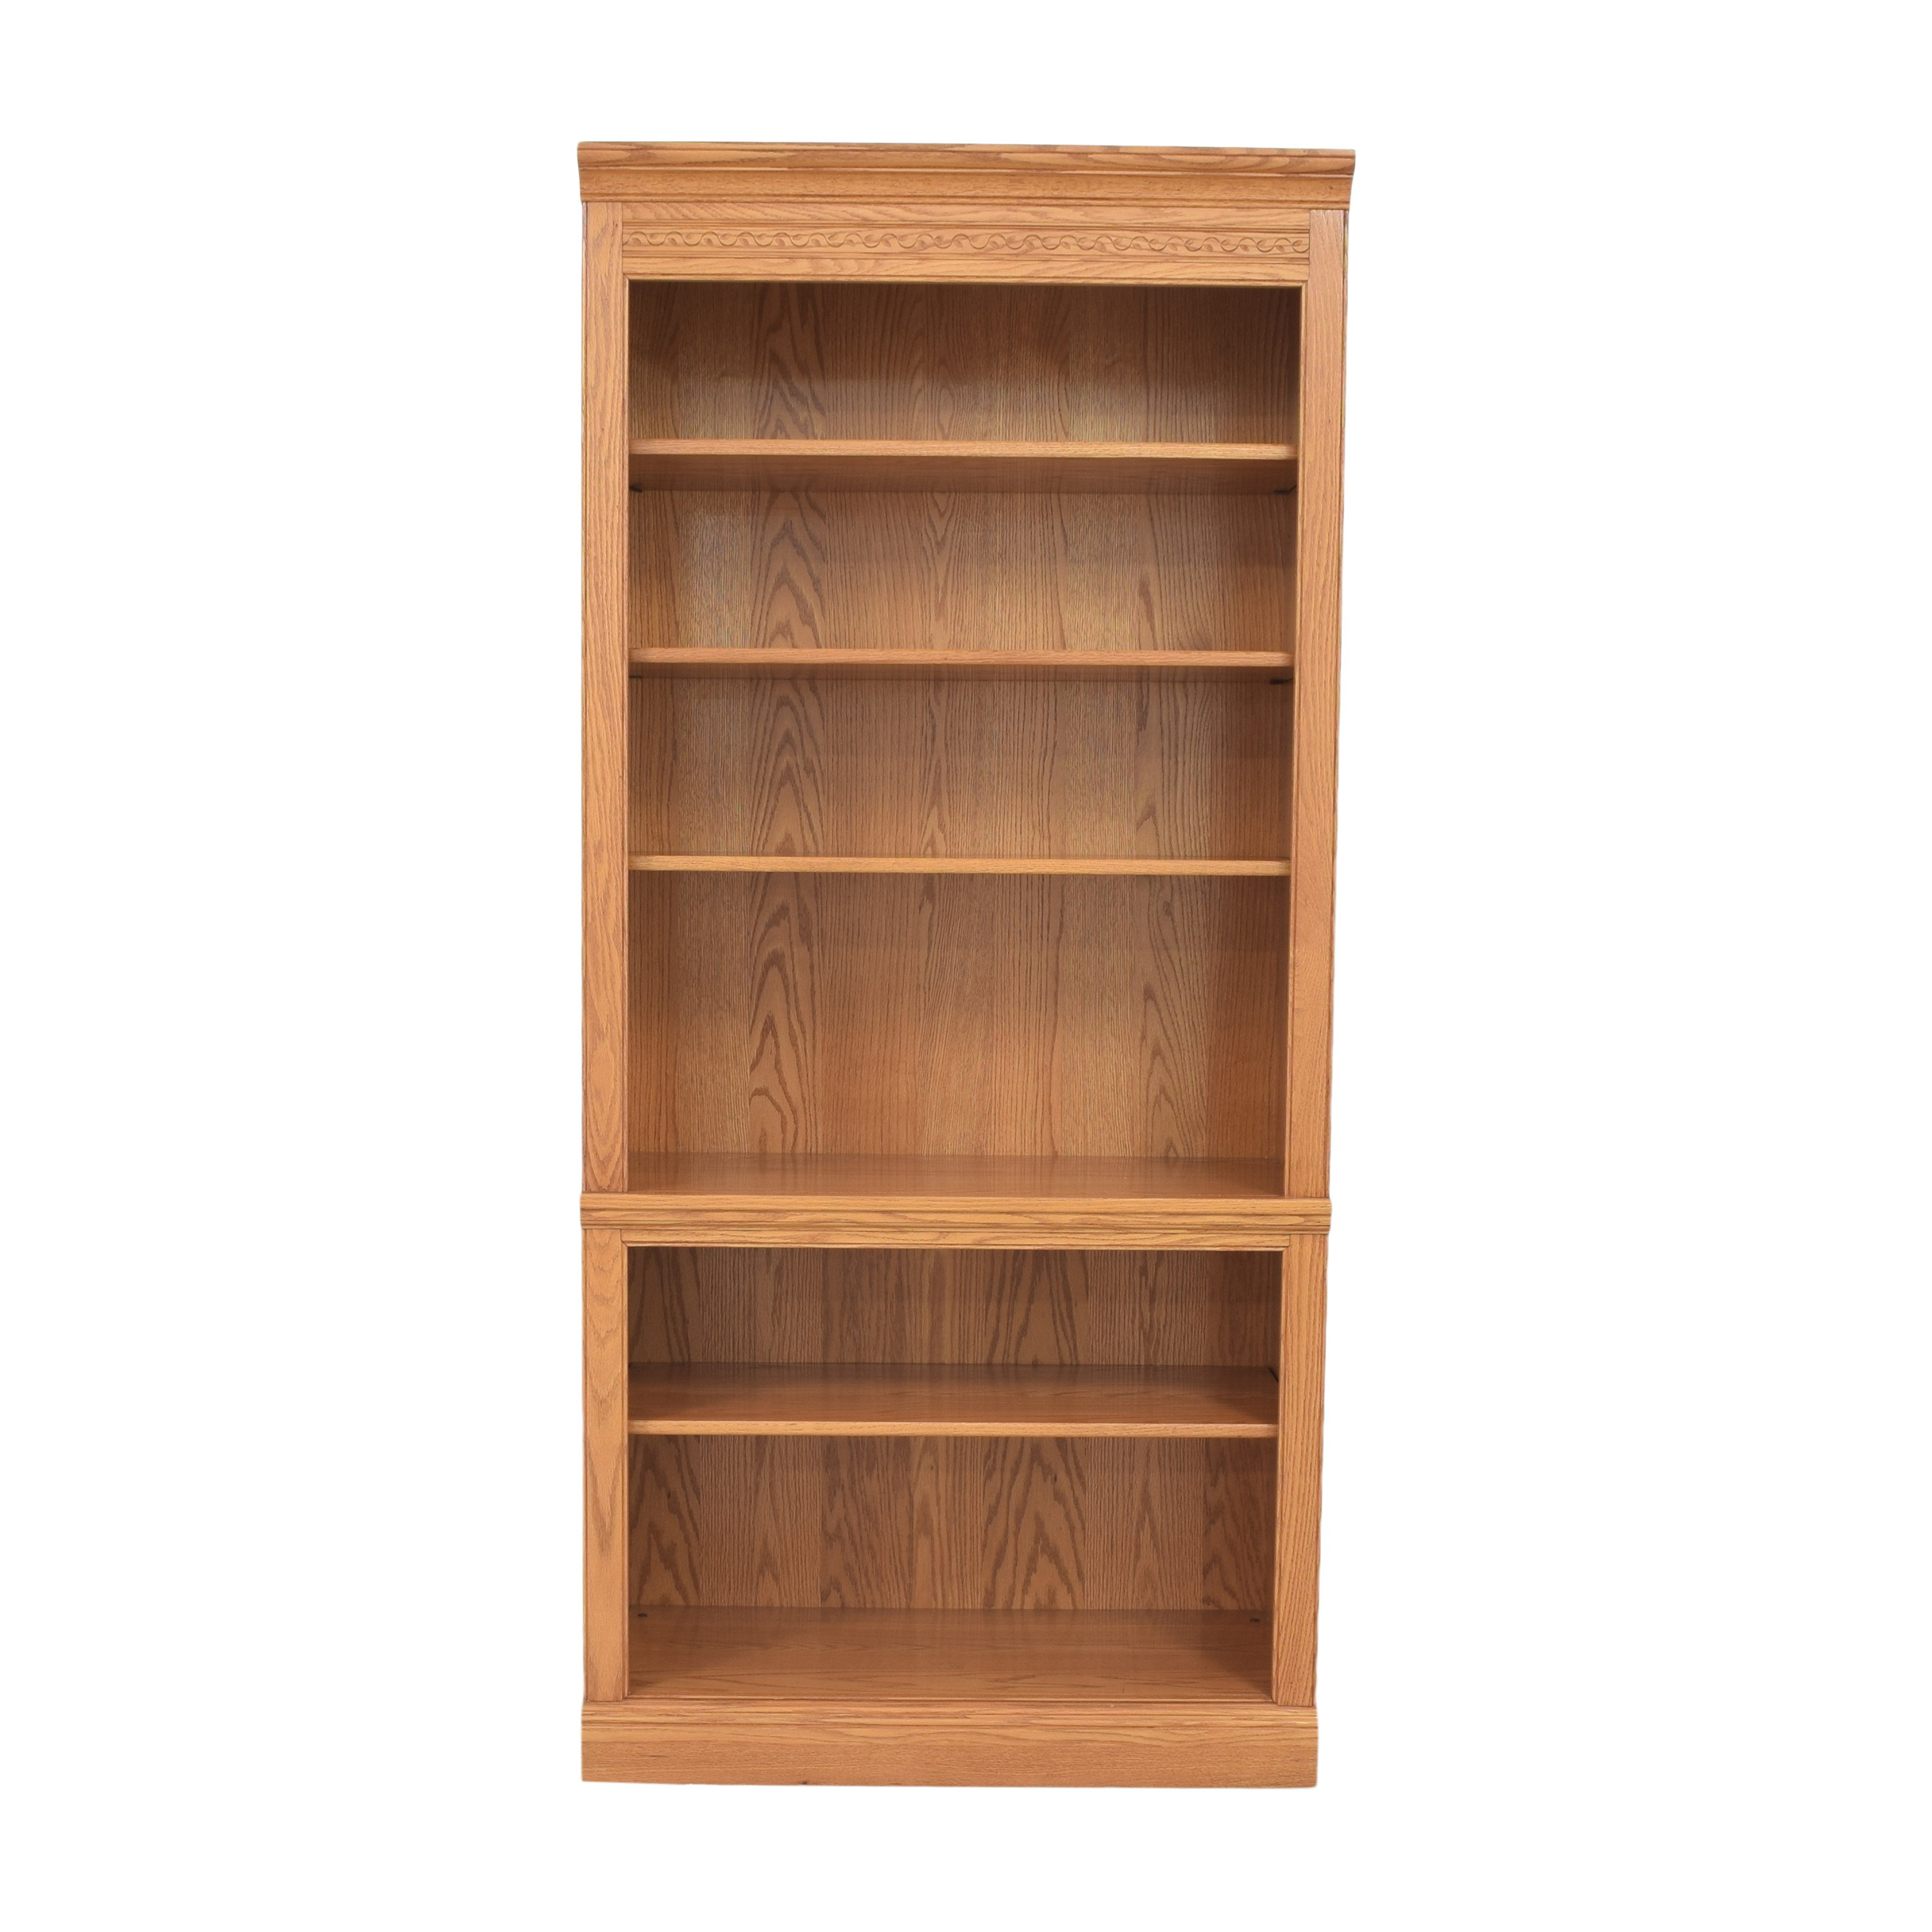 Ethan Allen Ethan Allen Tall Bookcase on sale